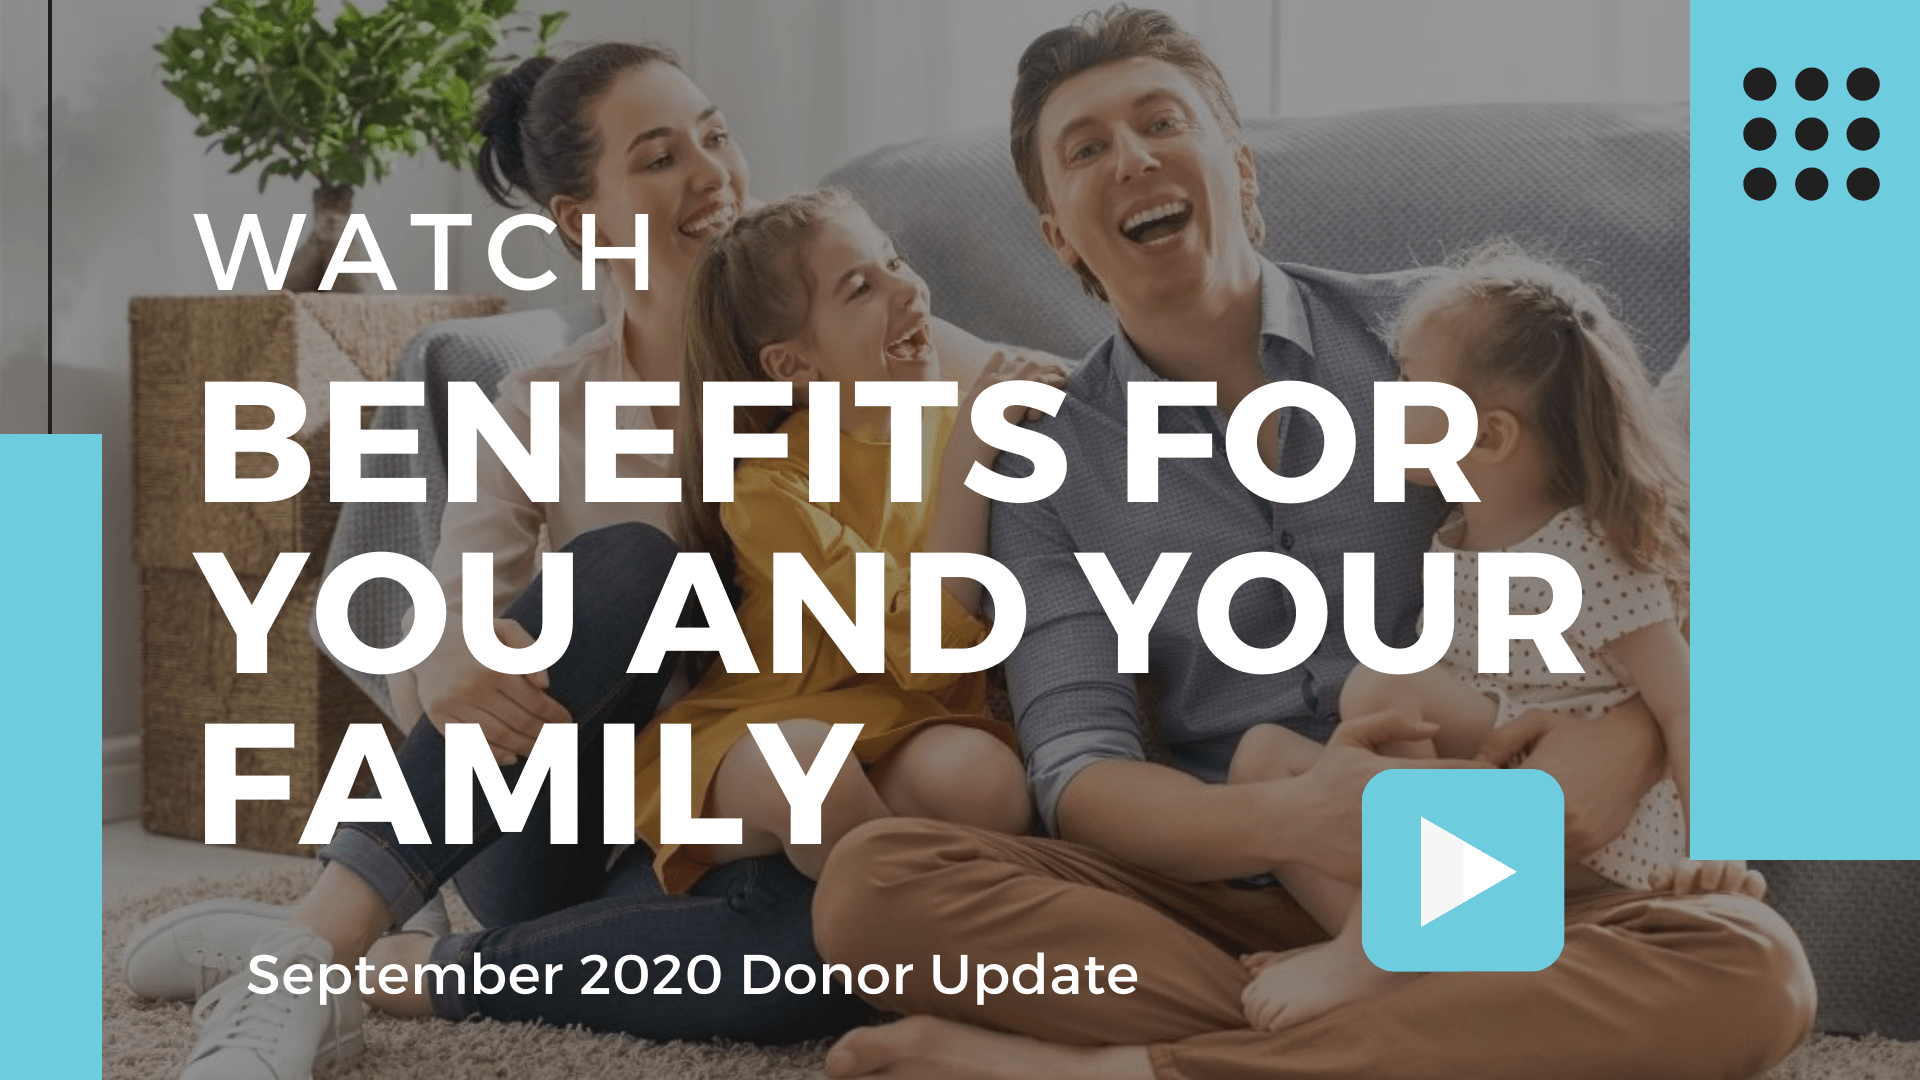 September 2020 Donor Update